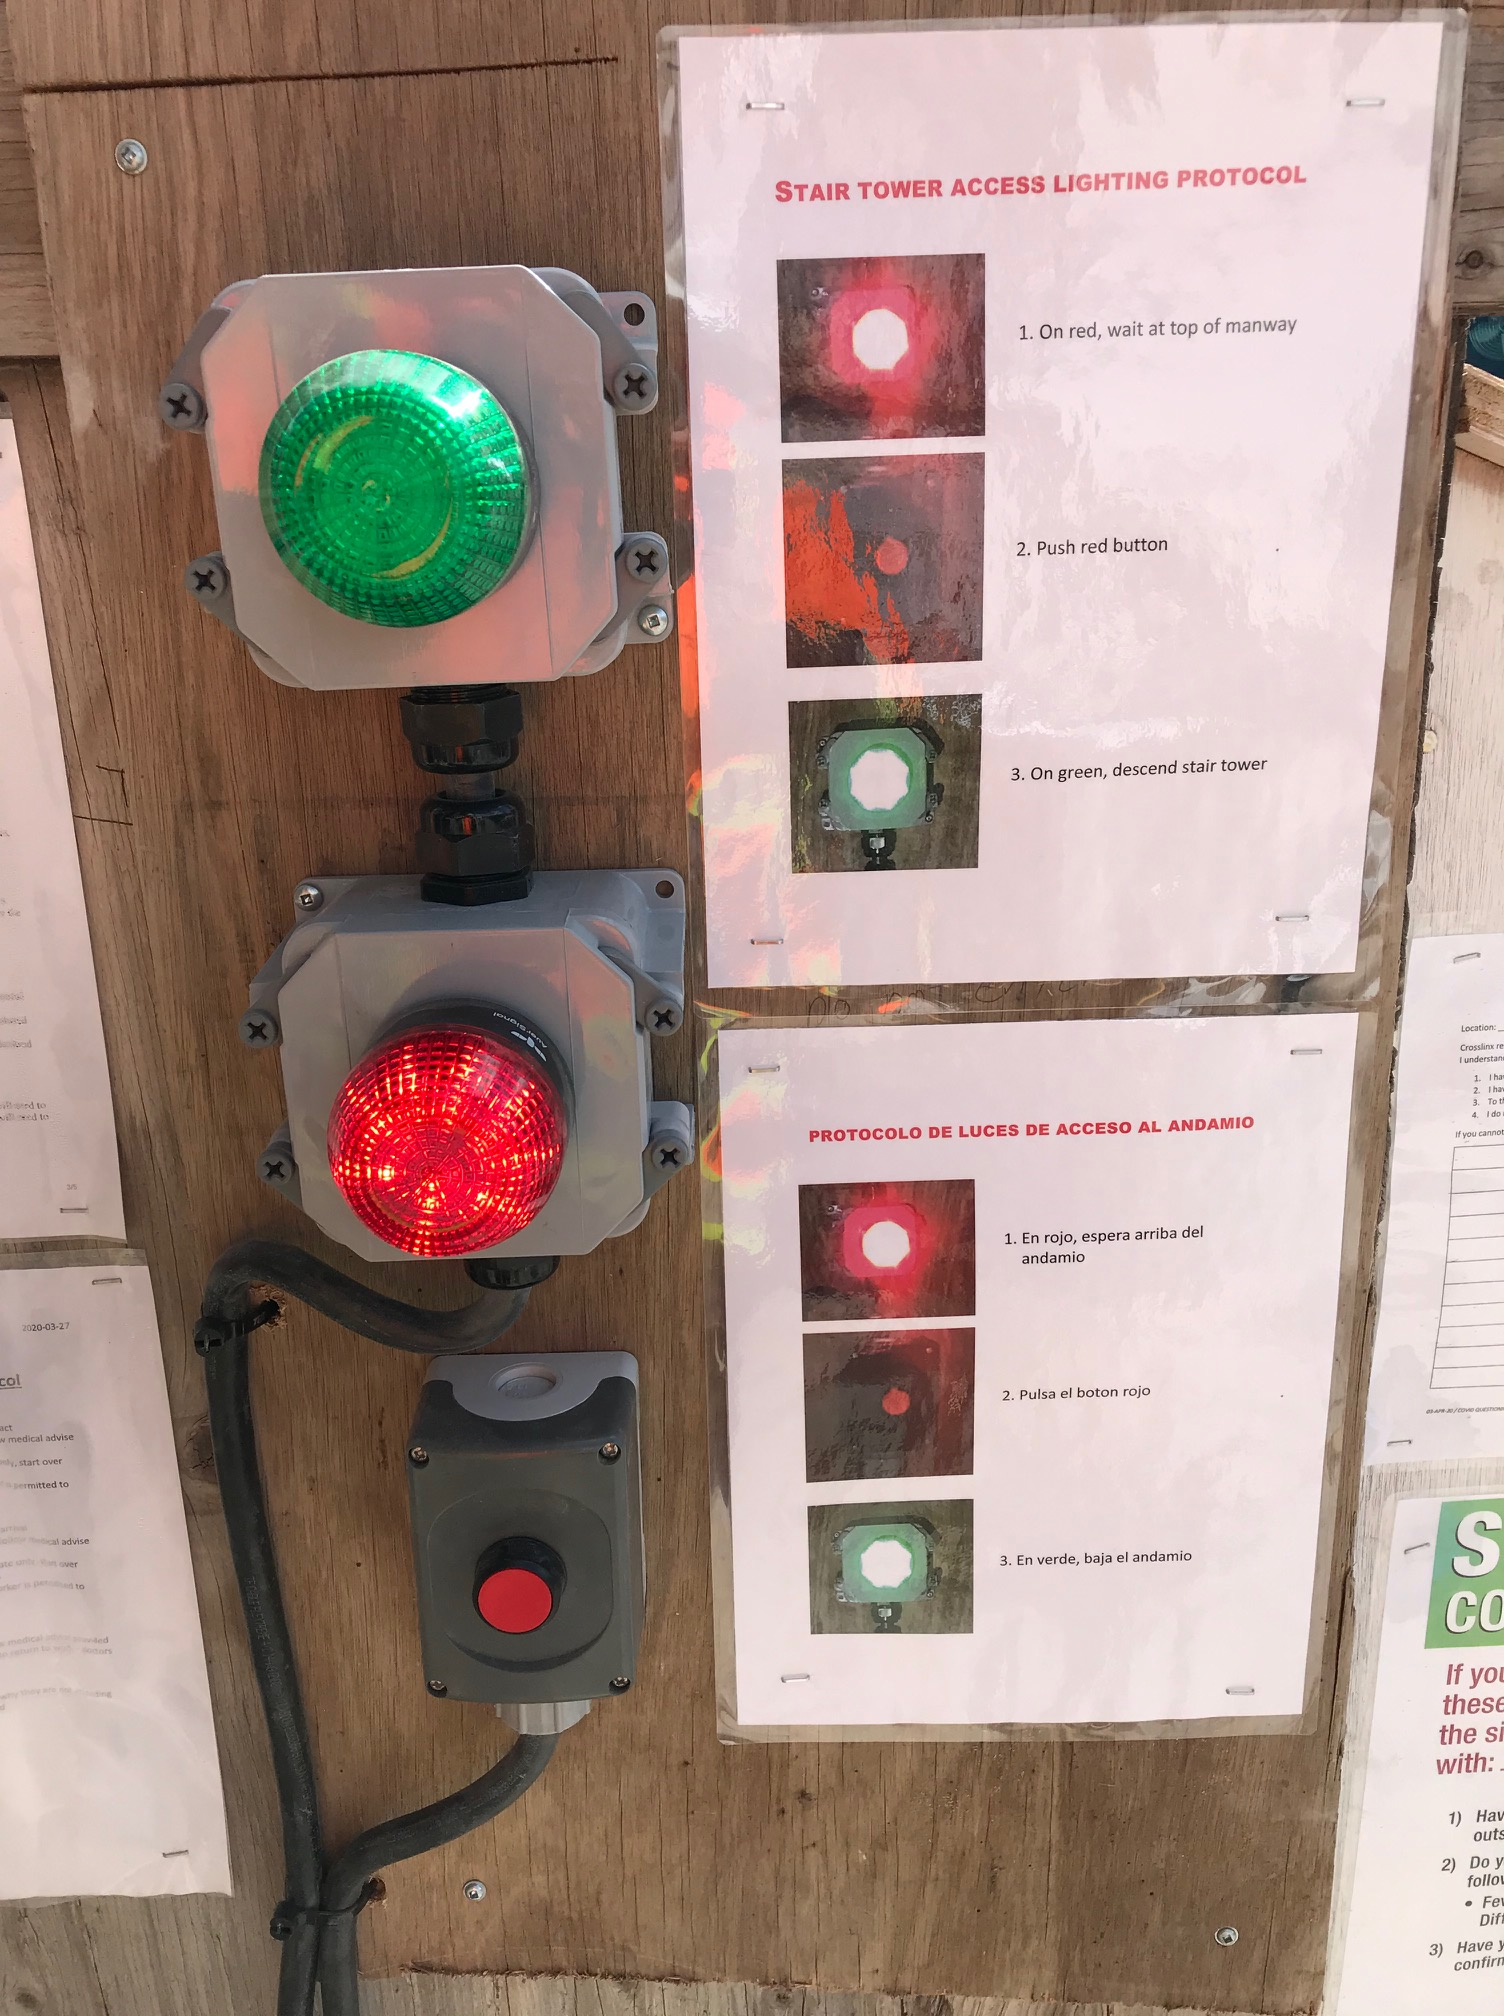 Image shows a green and red light, with instructions.